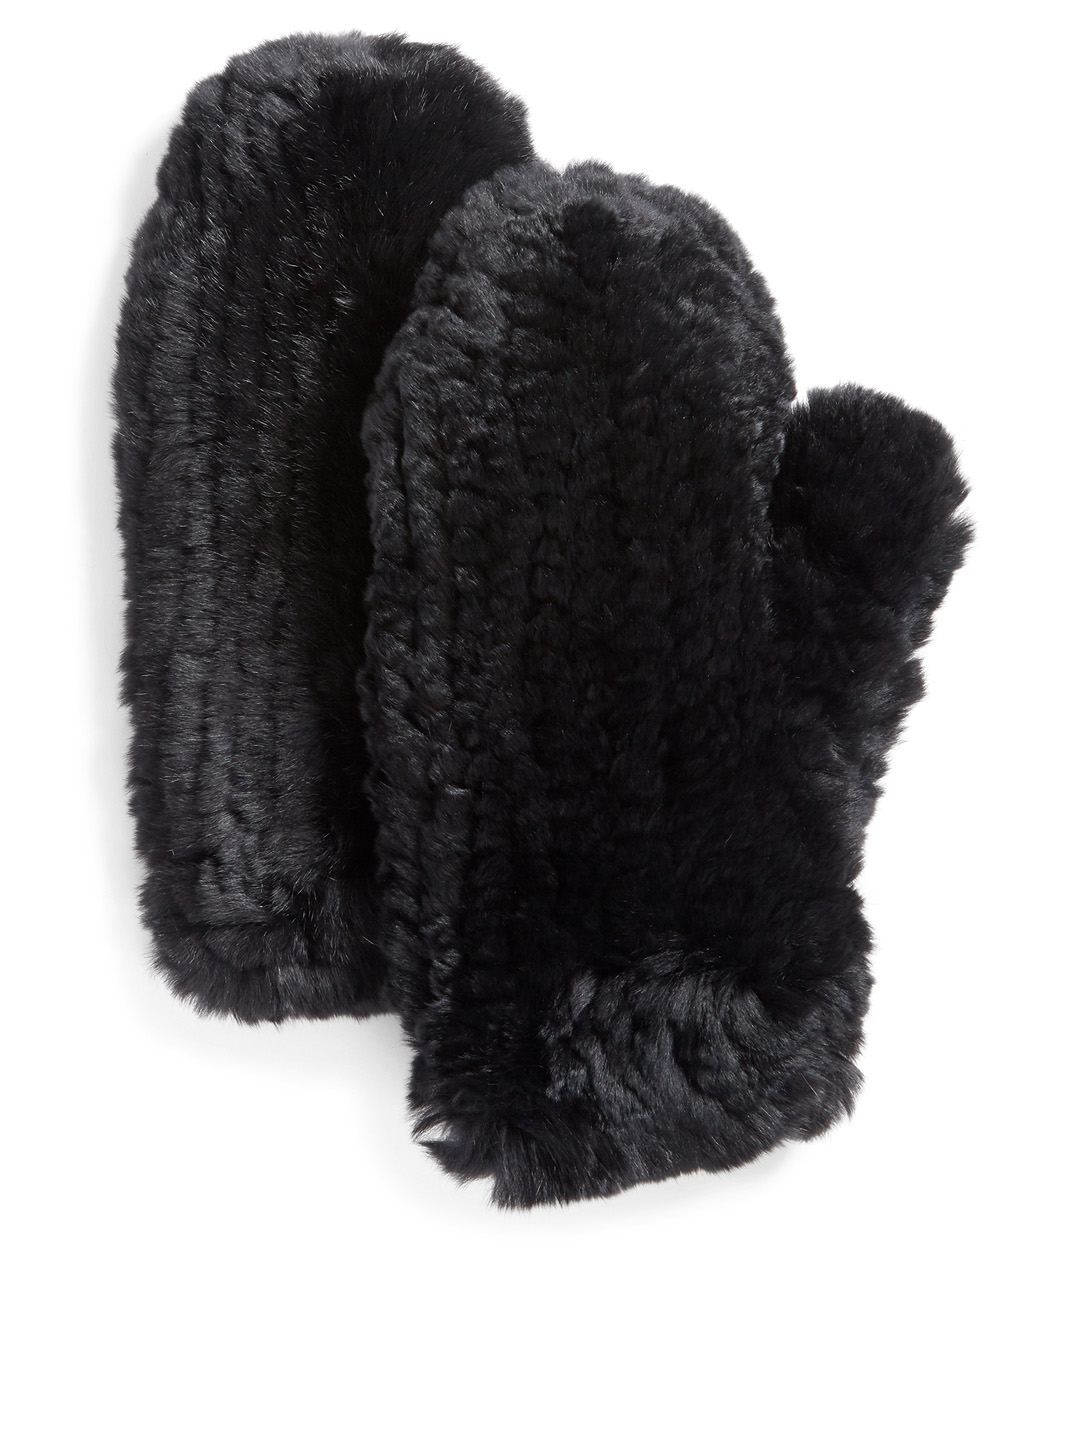 POLOGEORGIS Knit Rabbit Mittens Womens Black